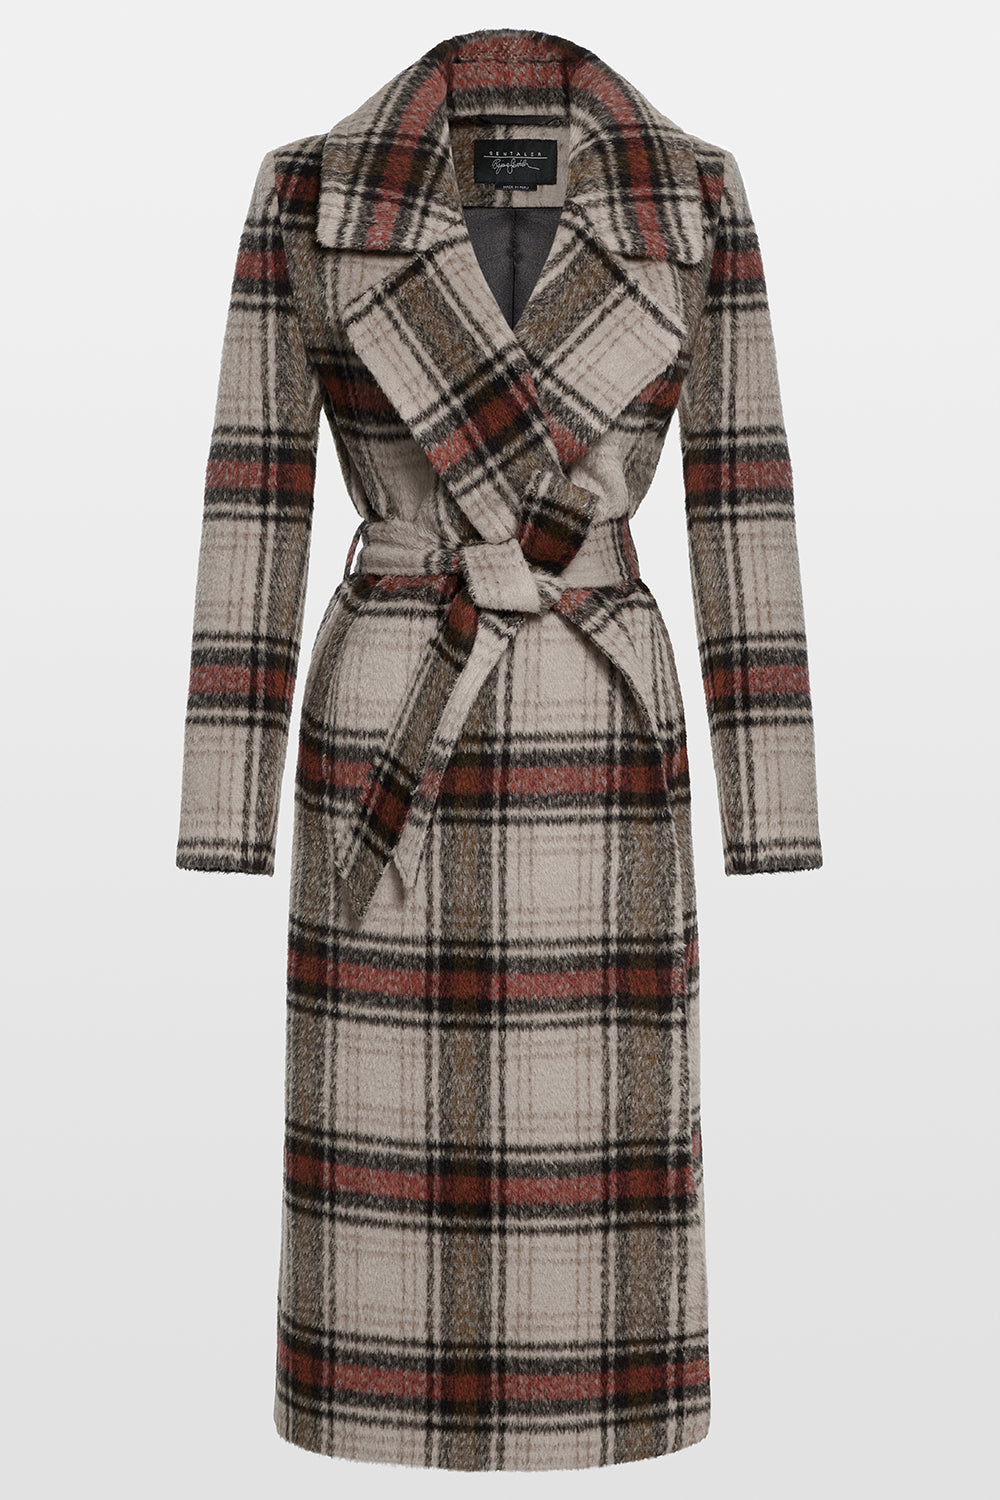 Sentaler Plaid Long Notched Collar Wrap Coat featured in Suri Alpaca and available in Sand Plaid. Seen off model.